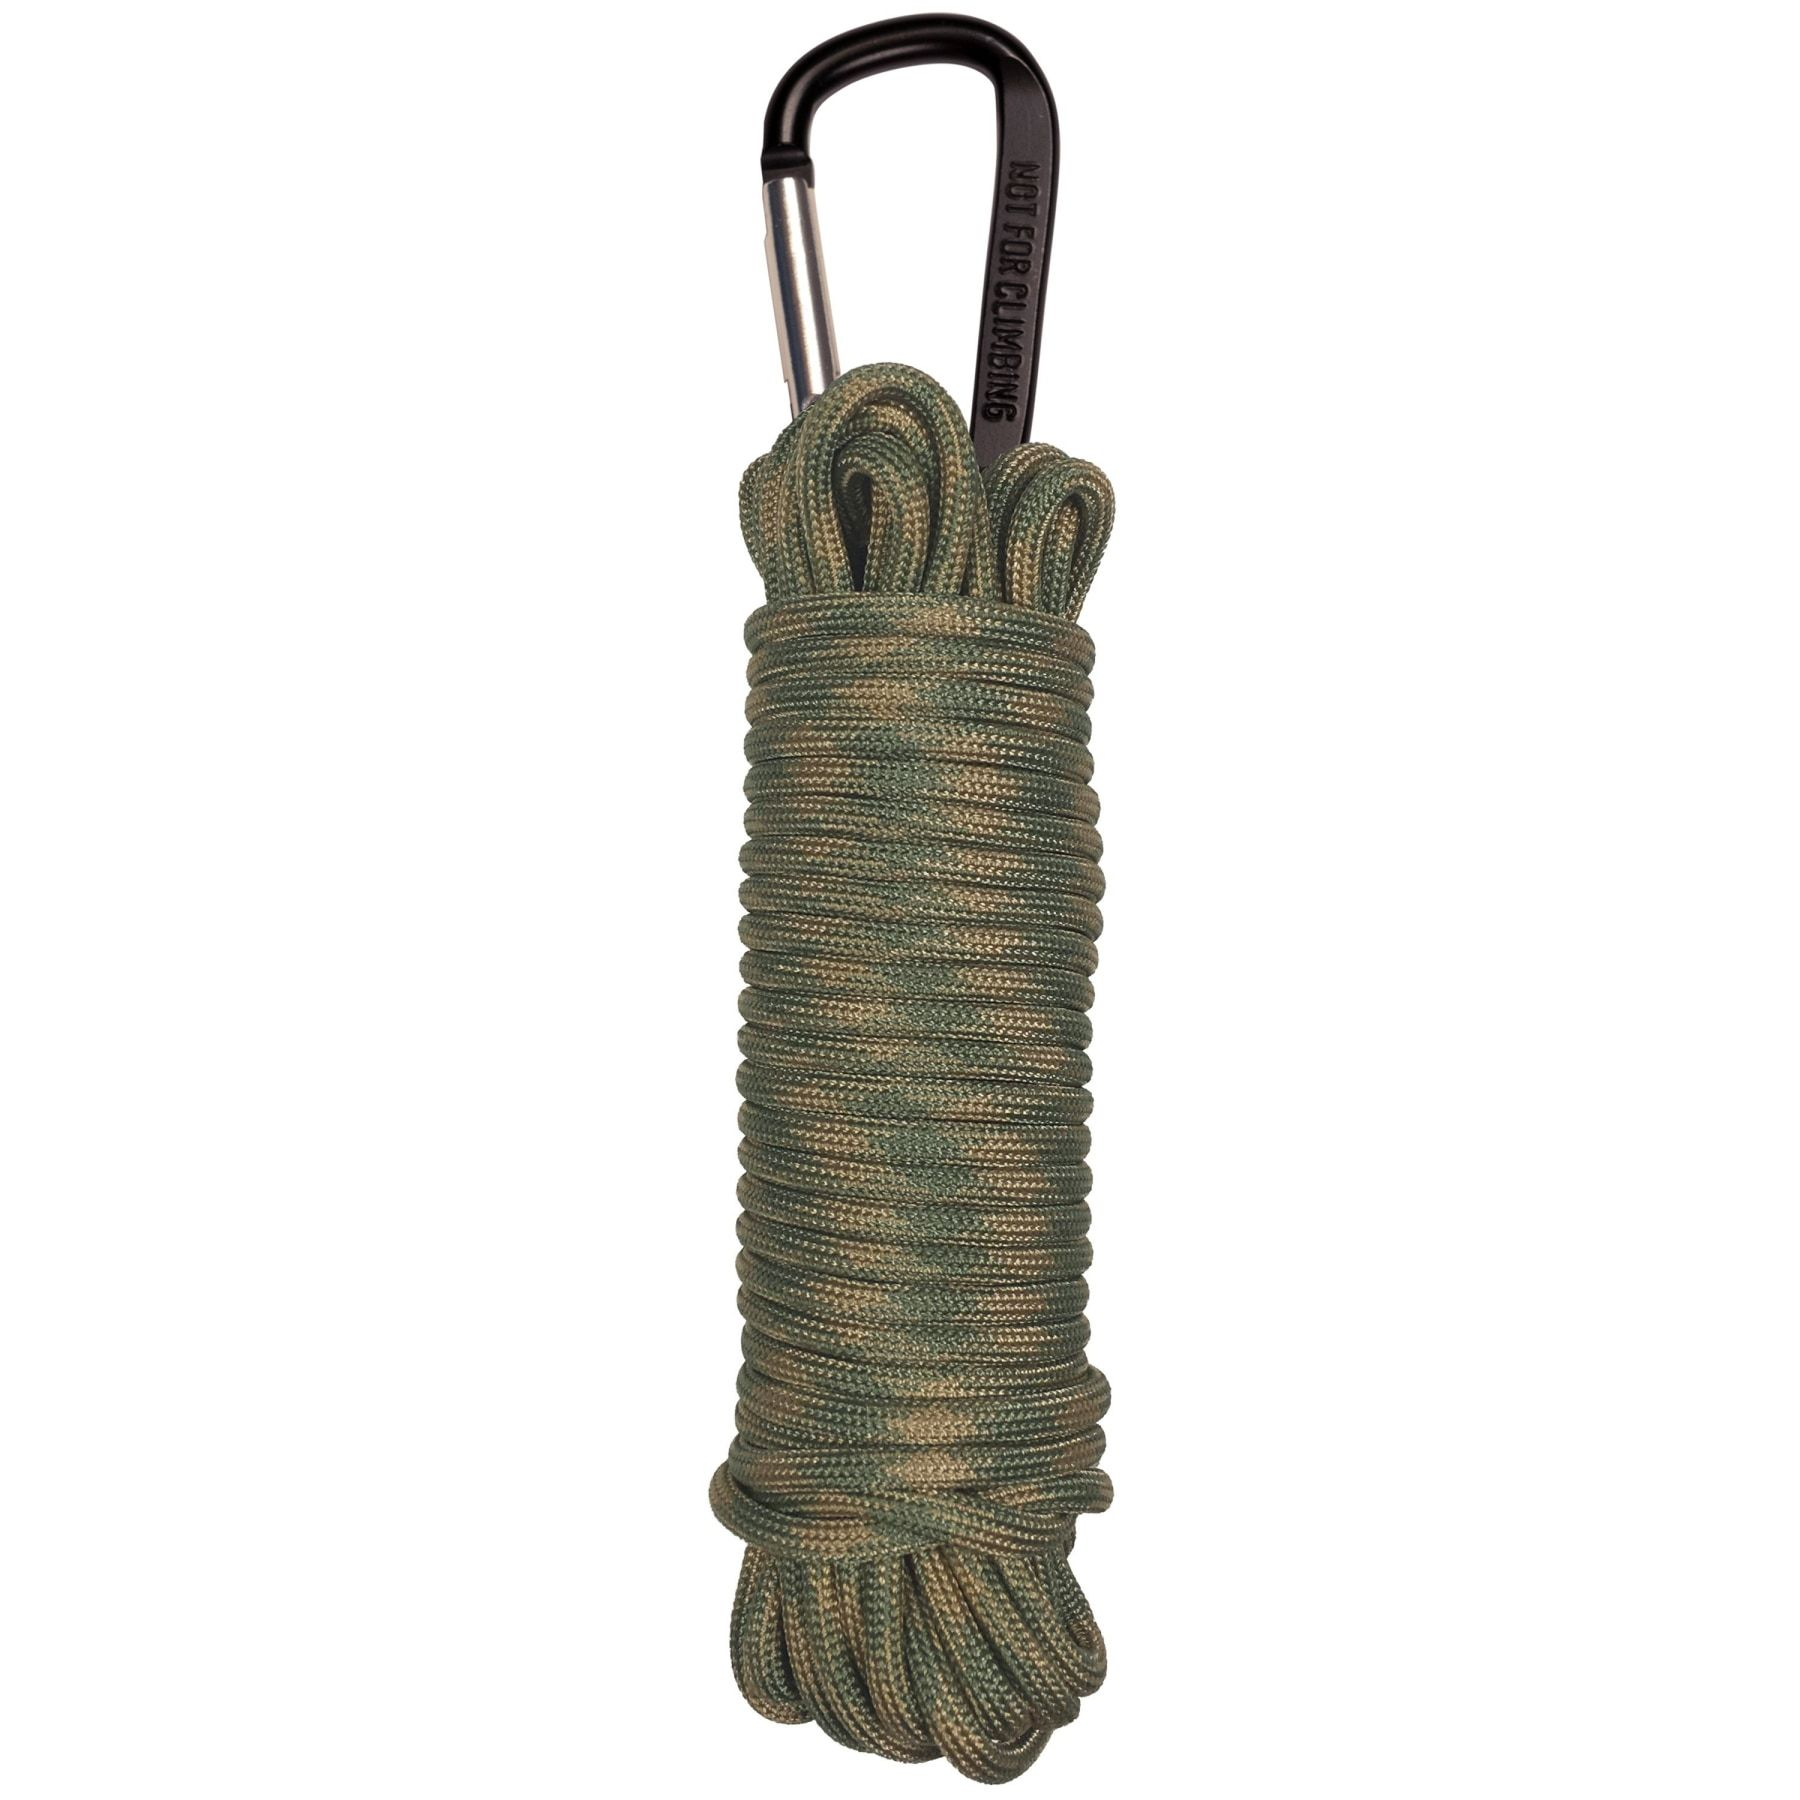 550 PARACORD - 30 FT WITH CARABINER - SAGE / TAN CAMO